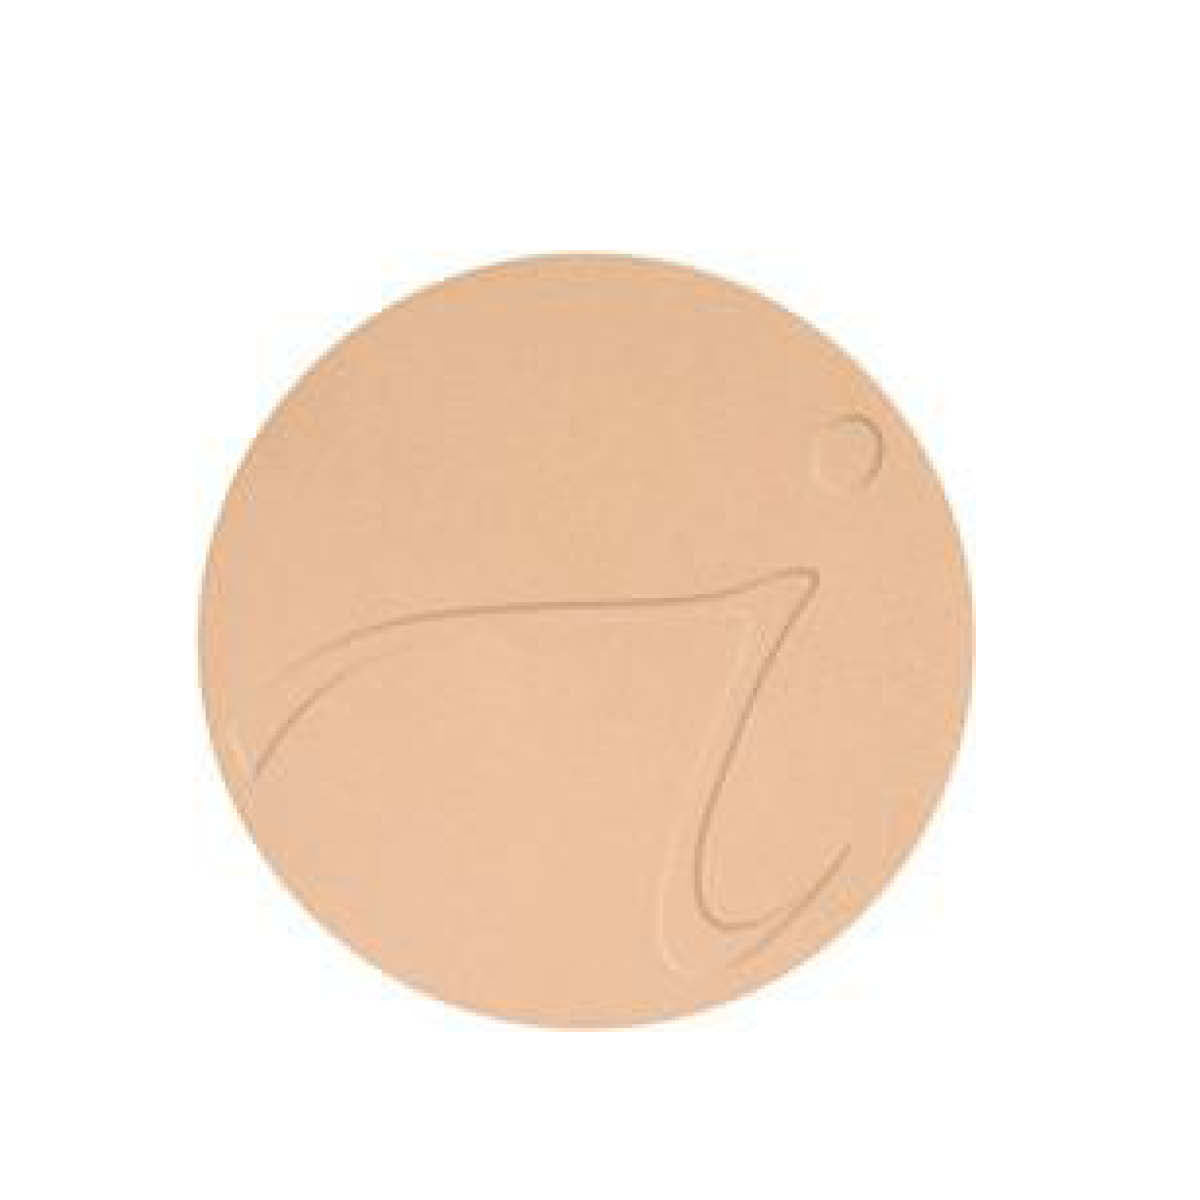 Jane Iredale Pure Pressed Powder Refill Riviera